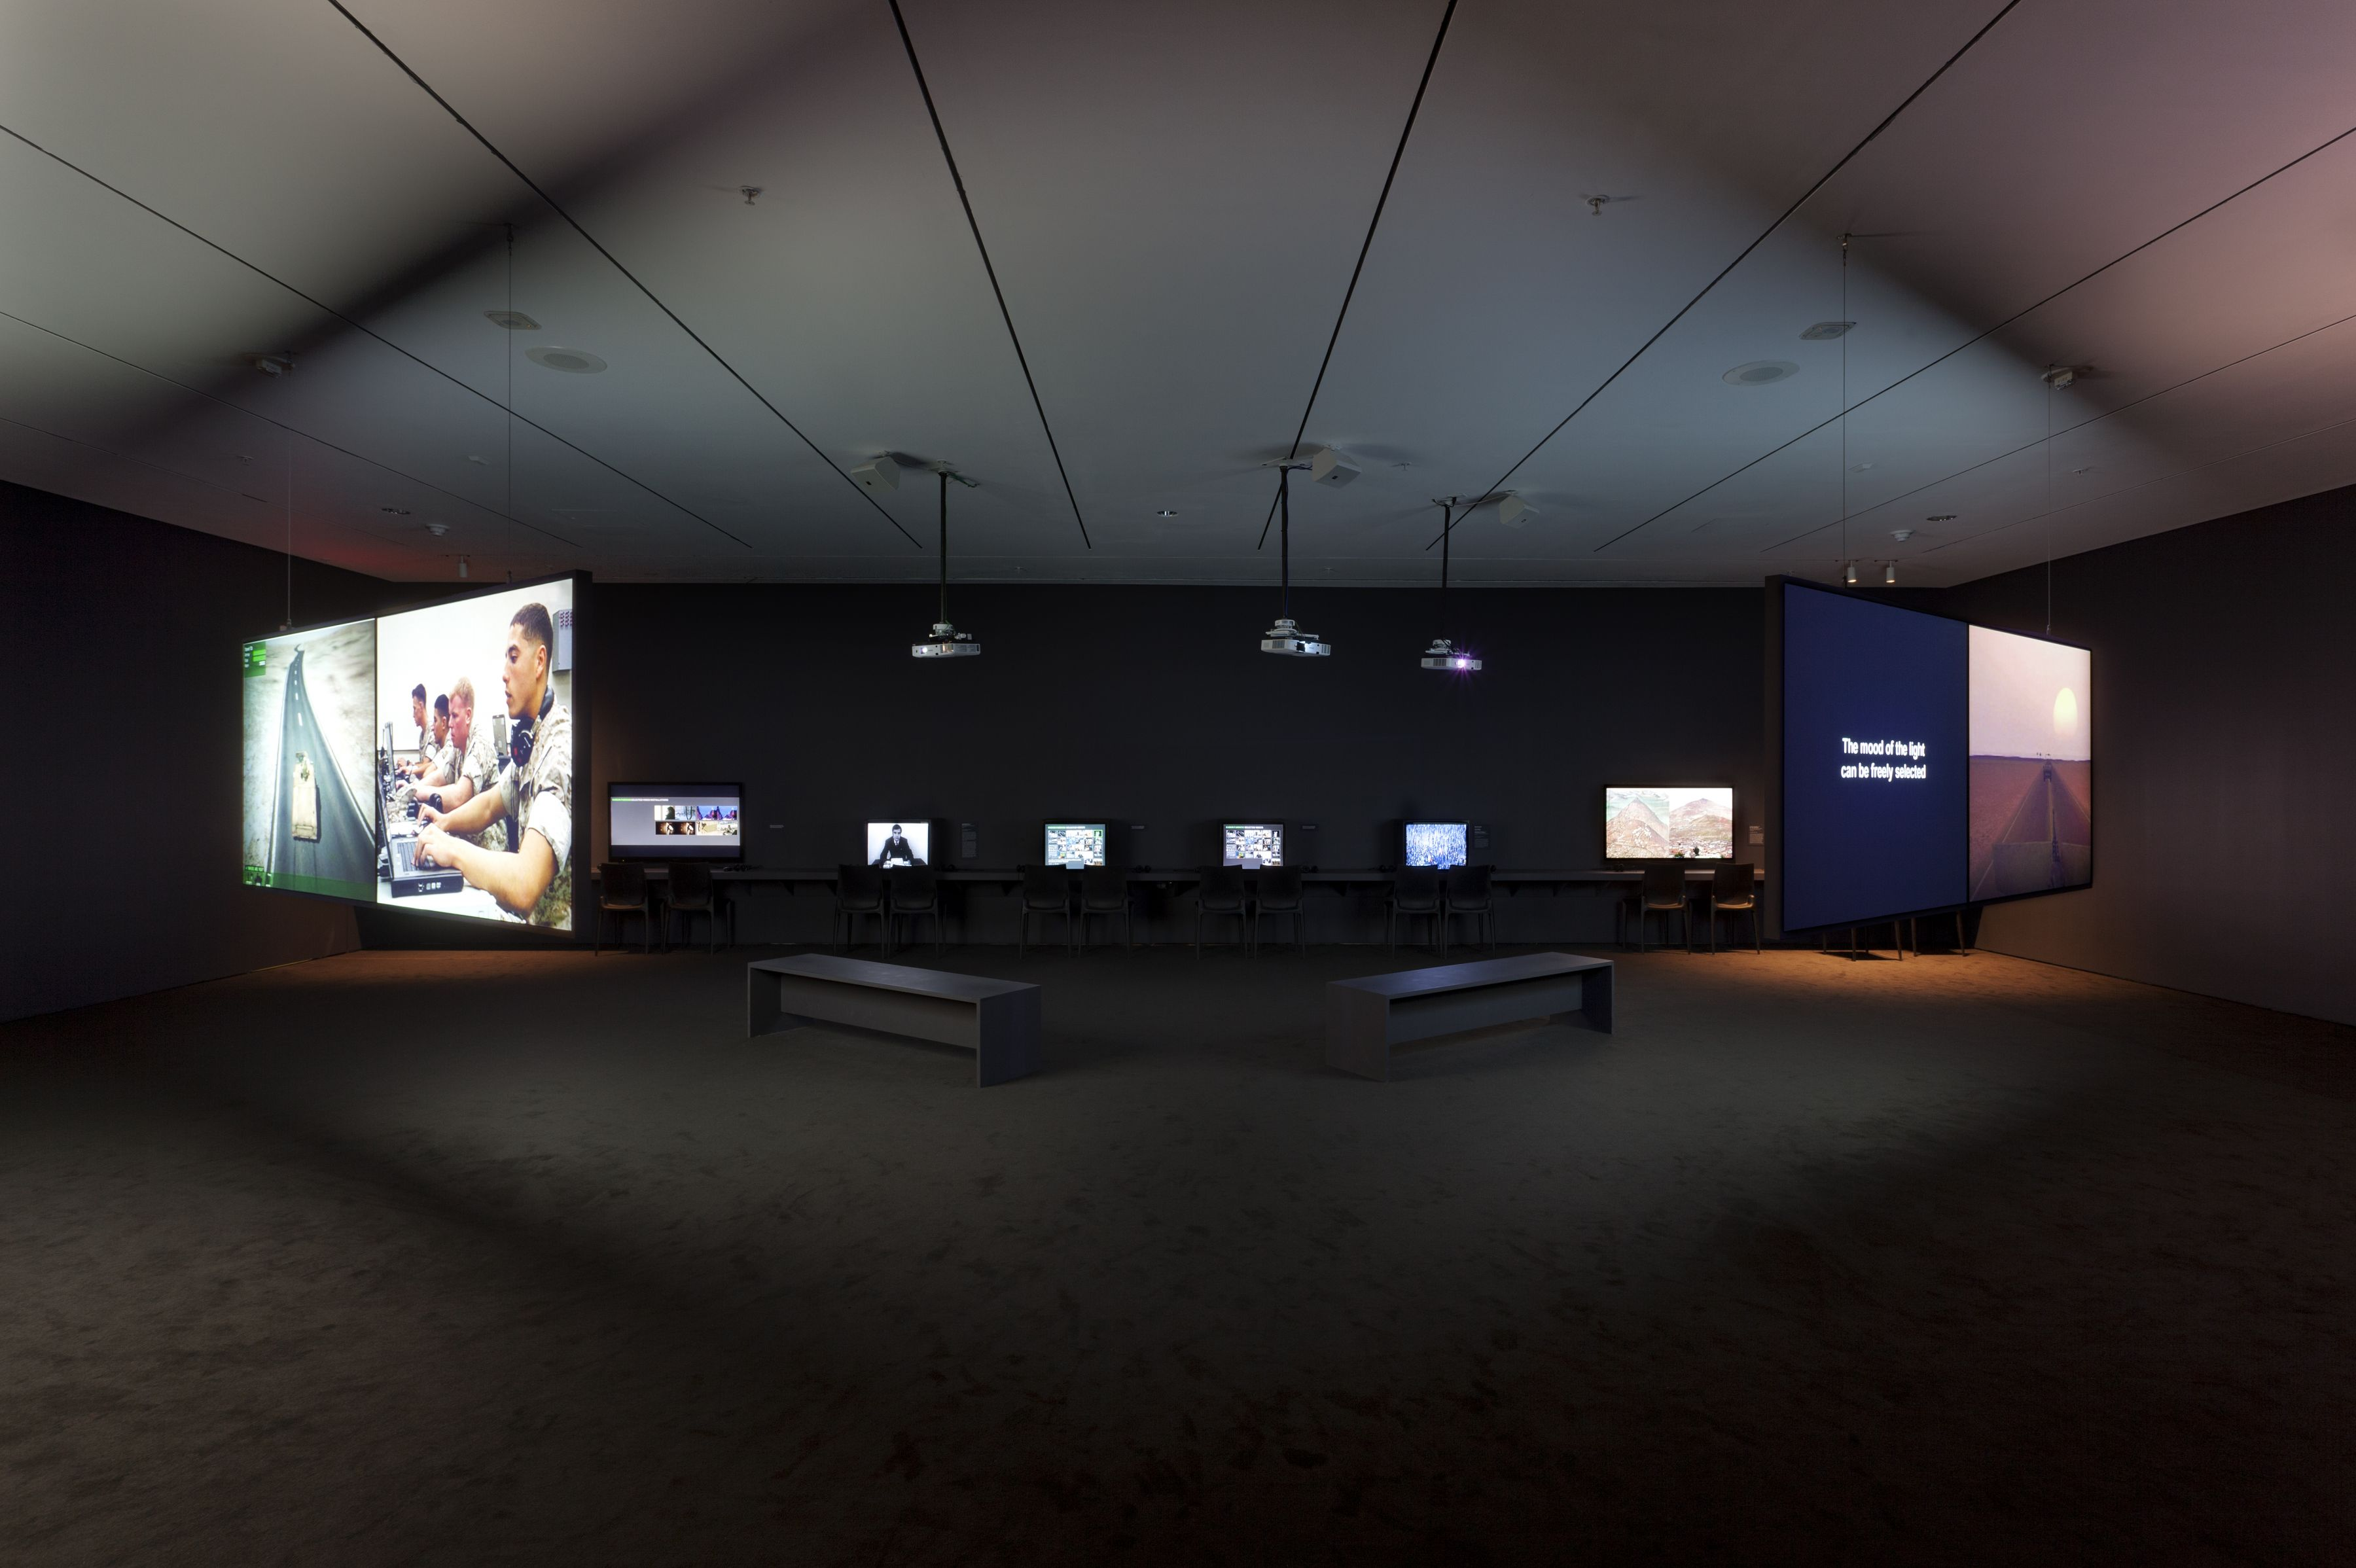 Installation view, Images of War (at a Distance), Museum of Modern Art, New York, 2011